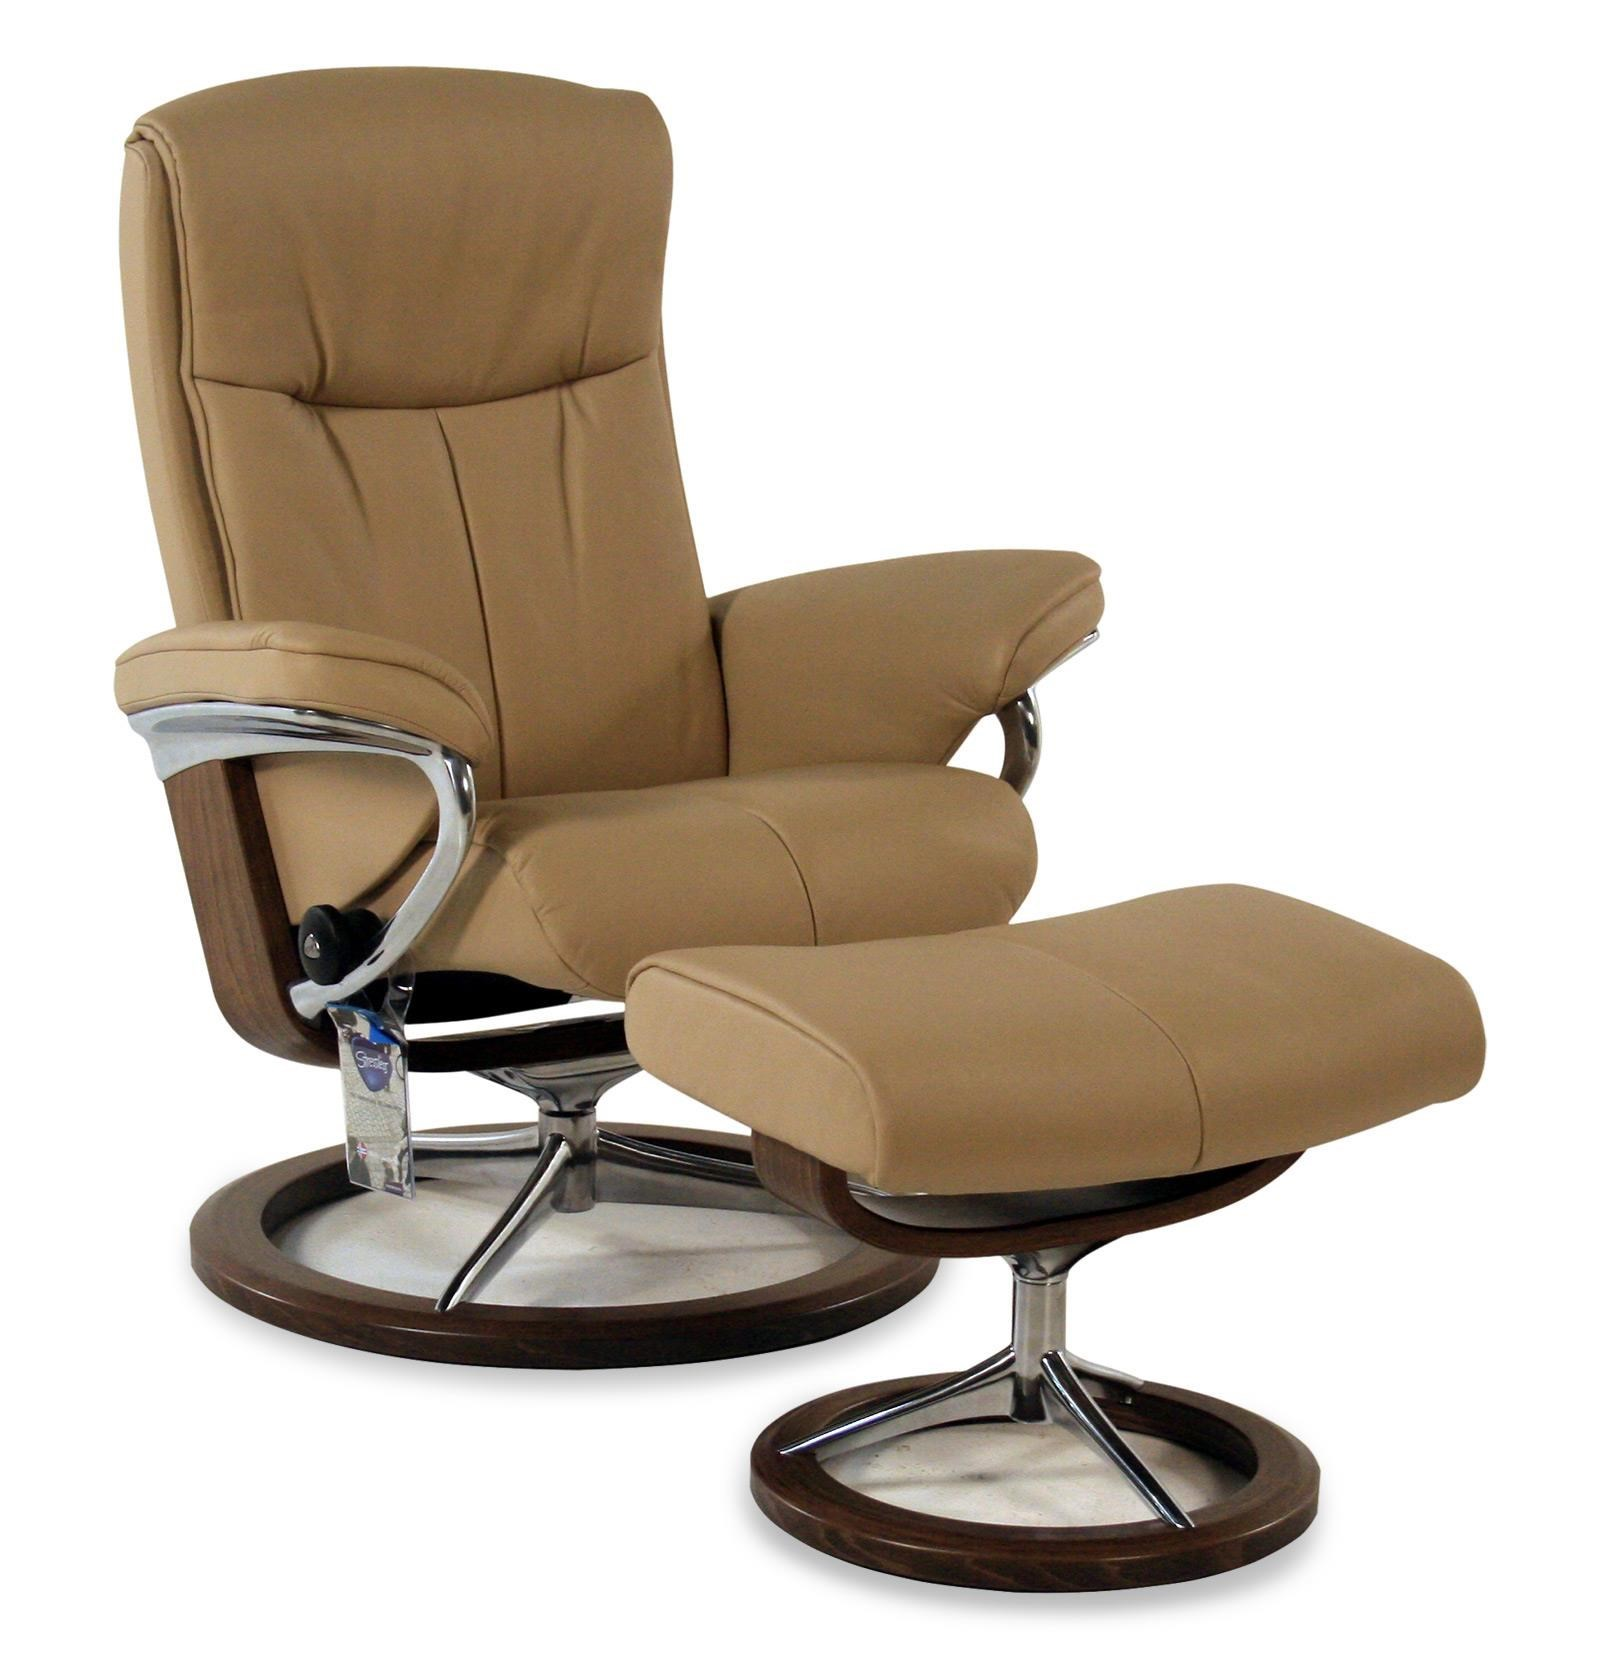 Stressless By Ekornes Peace Small Signature Reclining Chair/Ottoman: Paloma  Beige